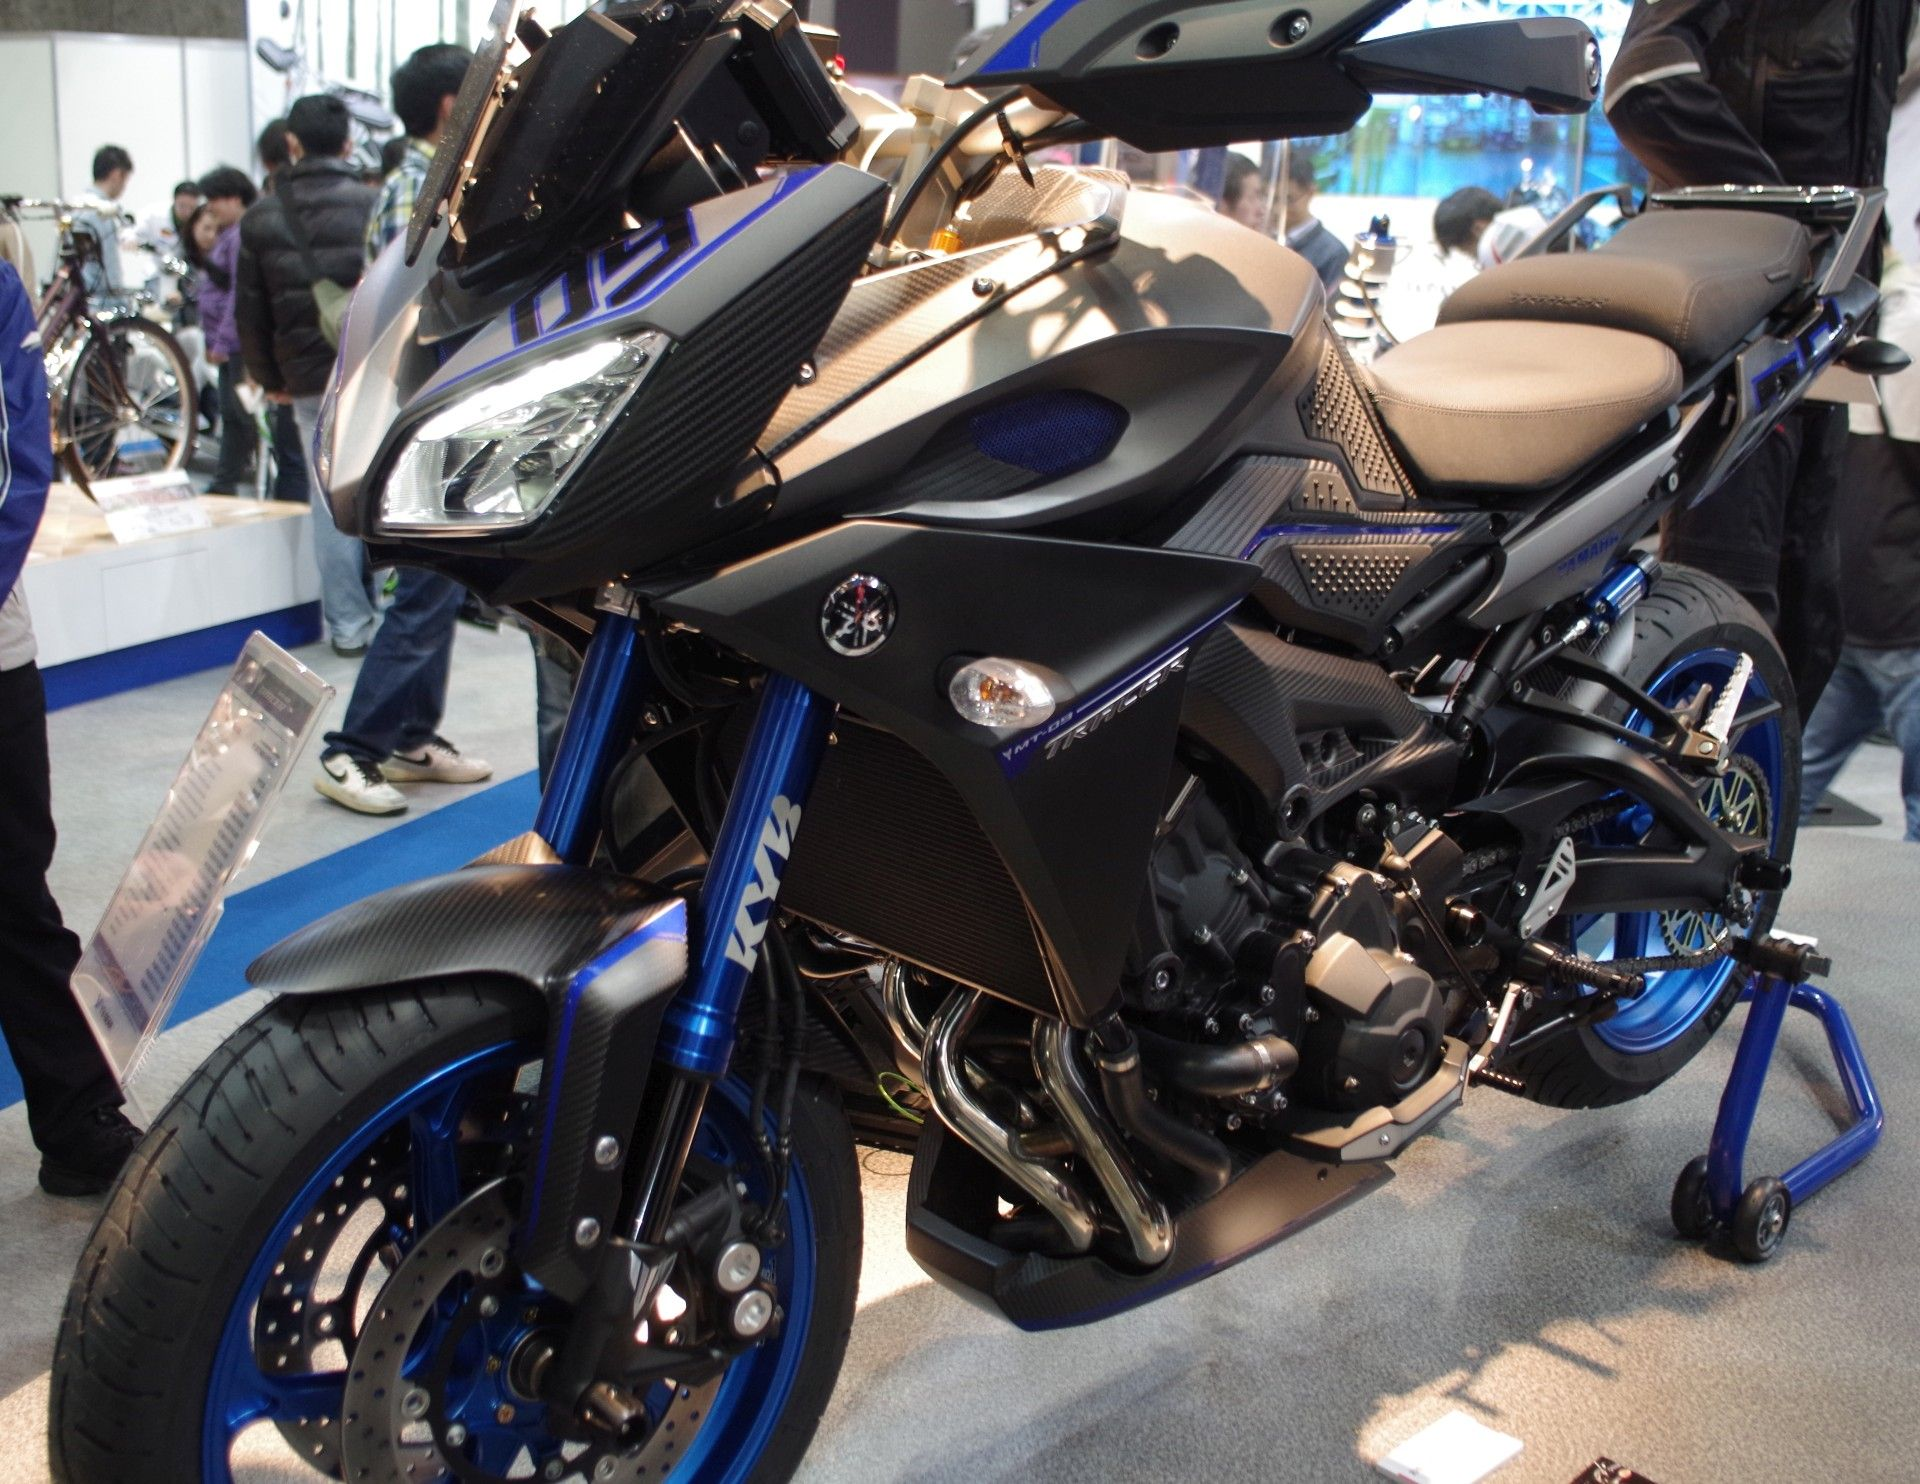 yamaha mt 09 tracer cafe racer pinterest yamaha bikes and wheels. Black Bedroom Furniture Sets. Home Design Ideas